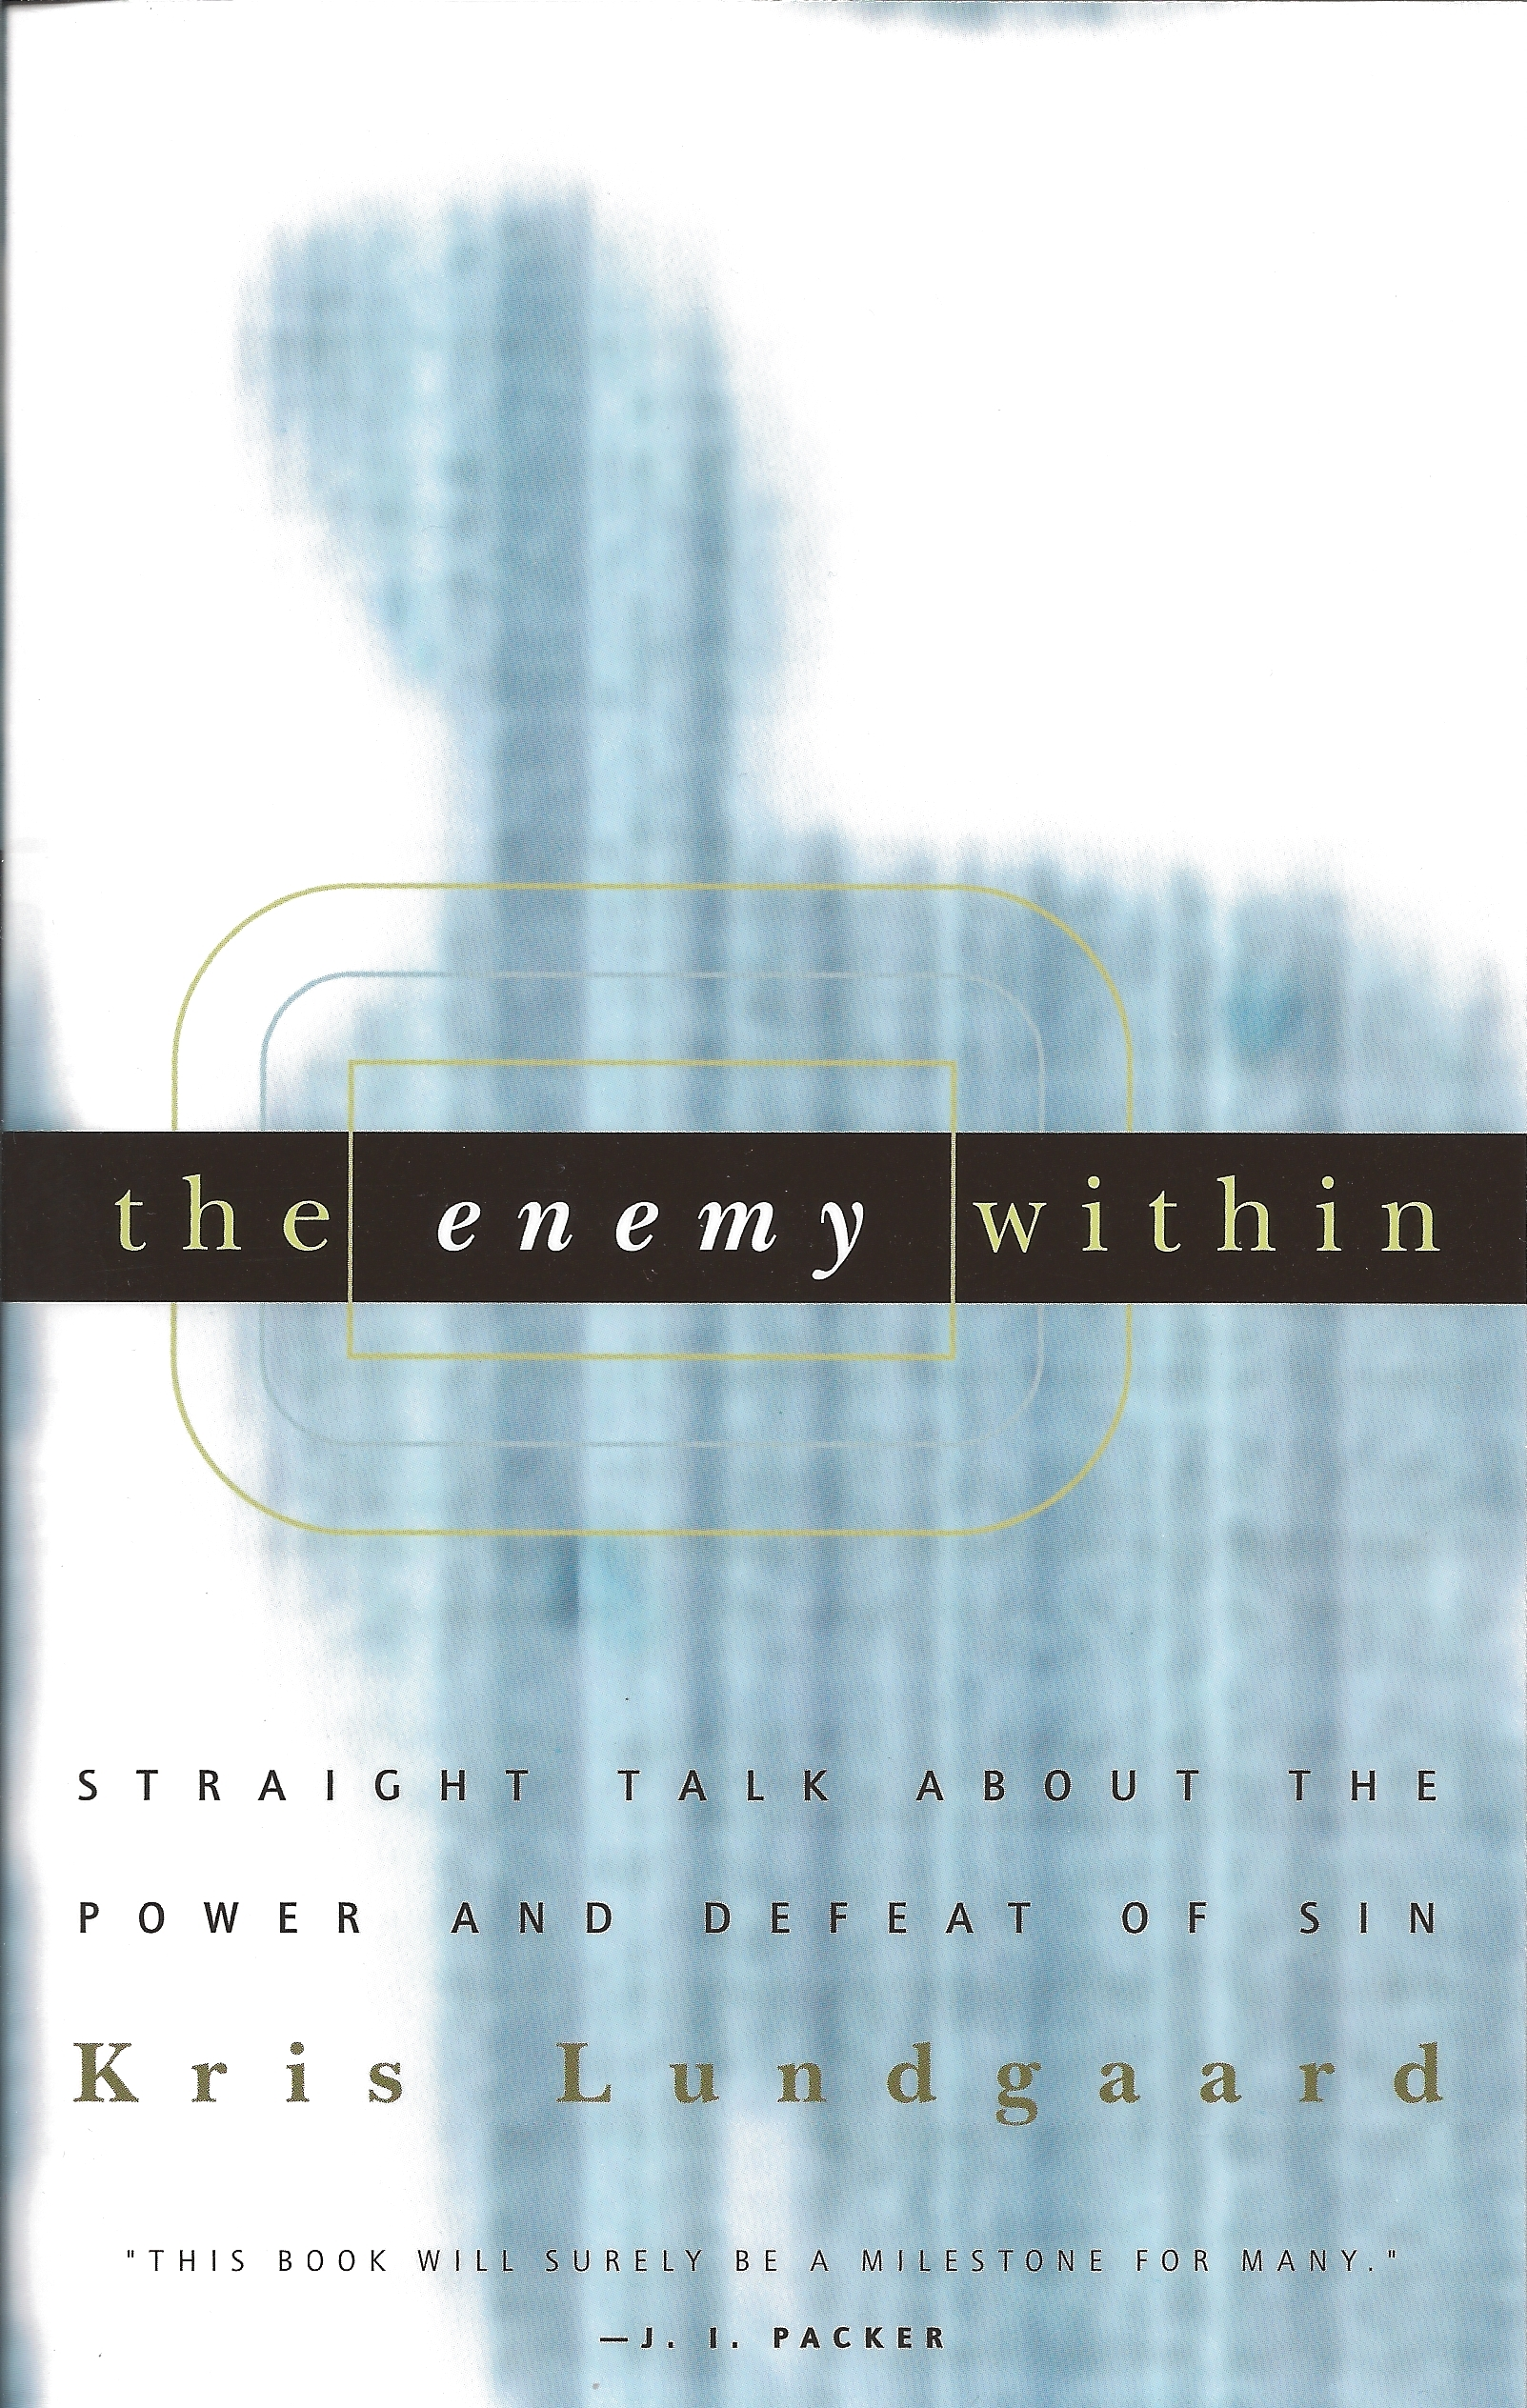 THE ENEMY WITHIN Kris Lundgaard